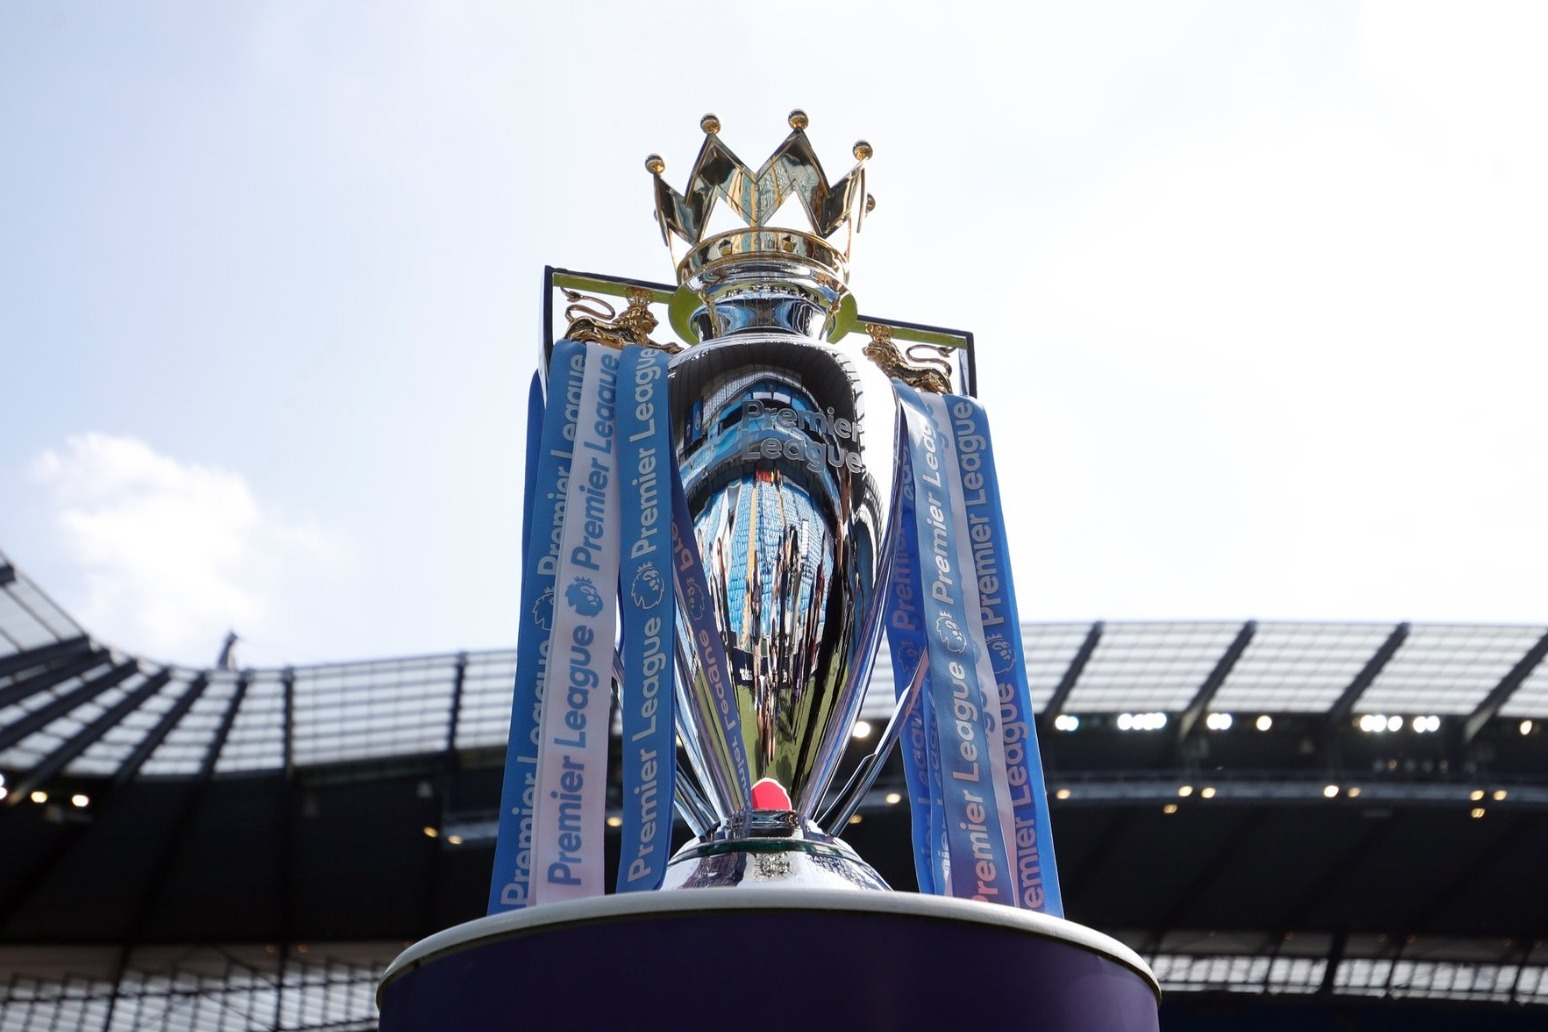 Premier League clubs predicted to lose 100 billion pounds